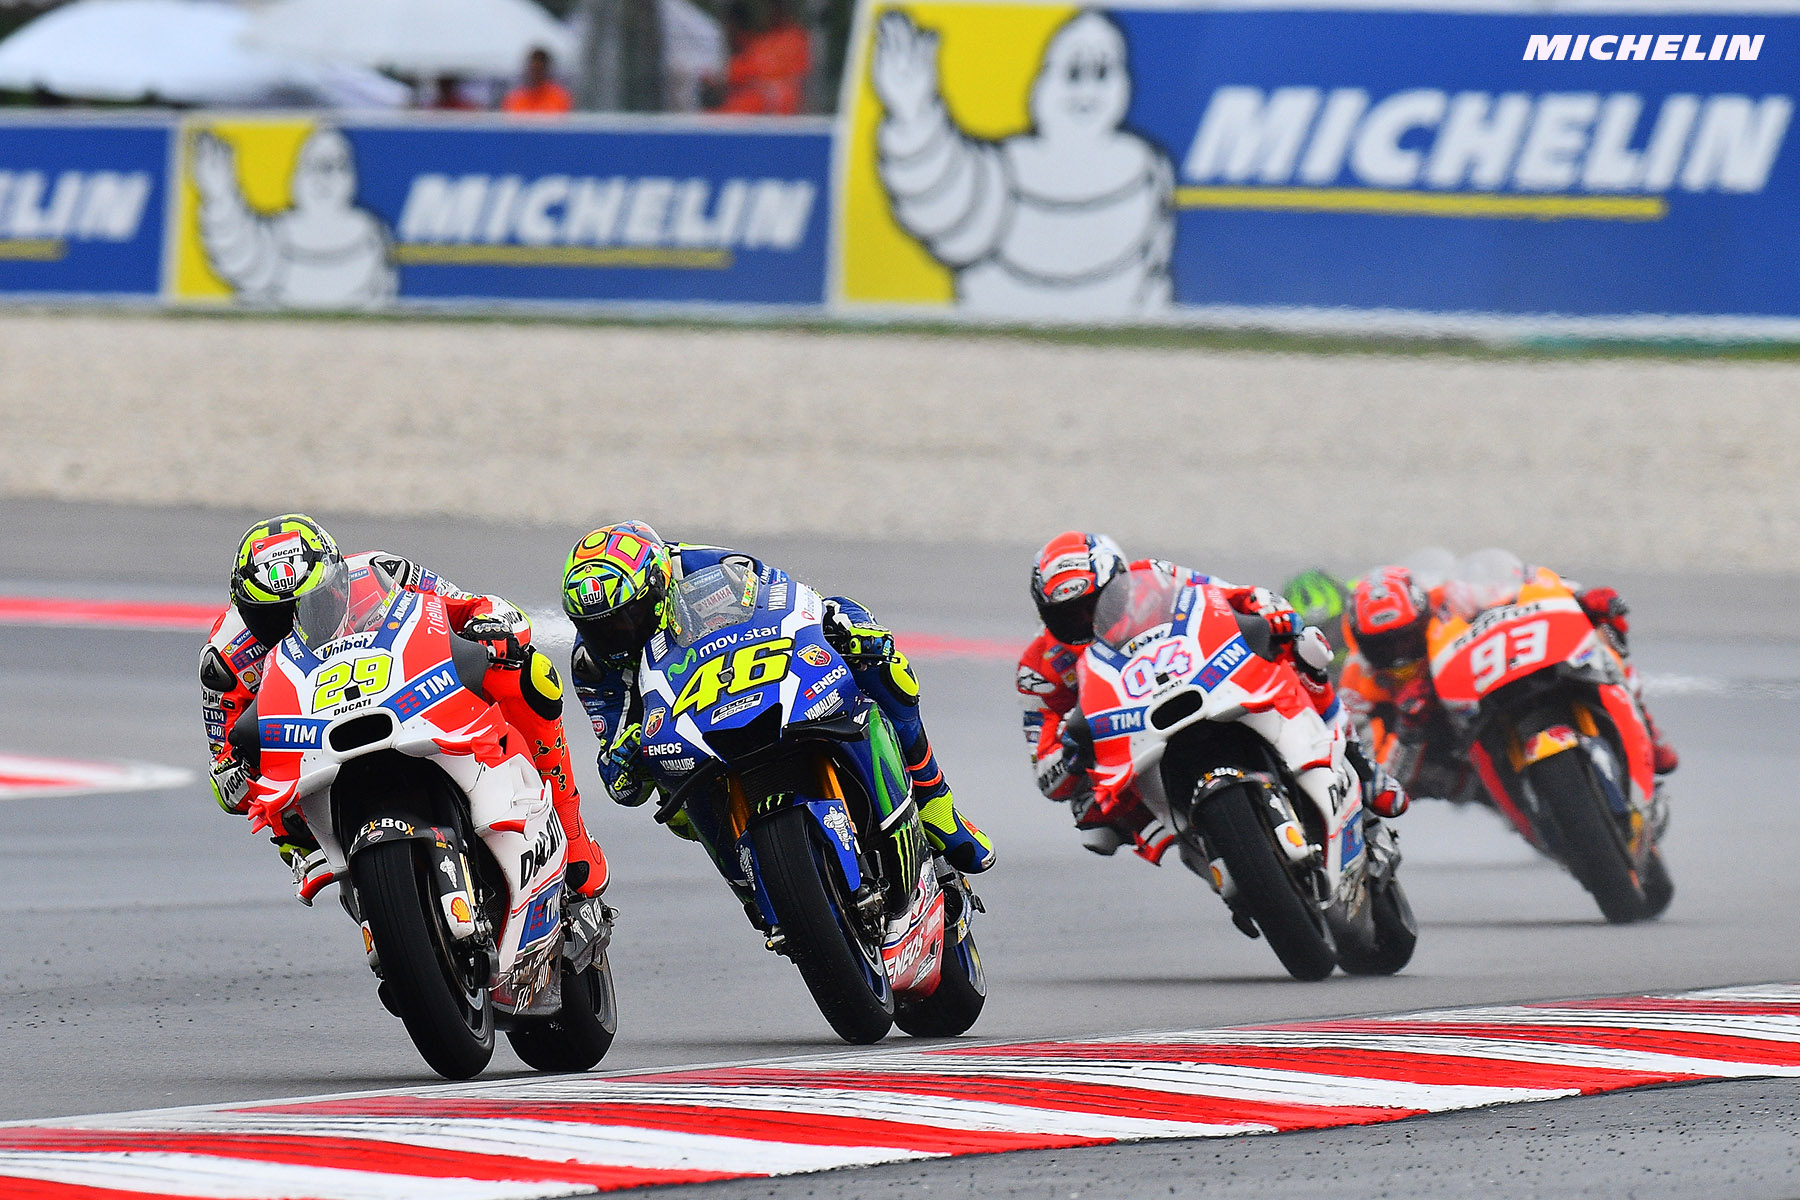 MotoGP: the 2016 championship to conclude in Valencia